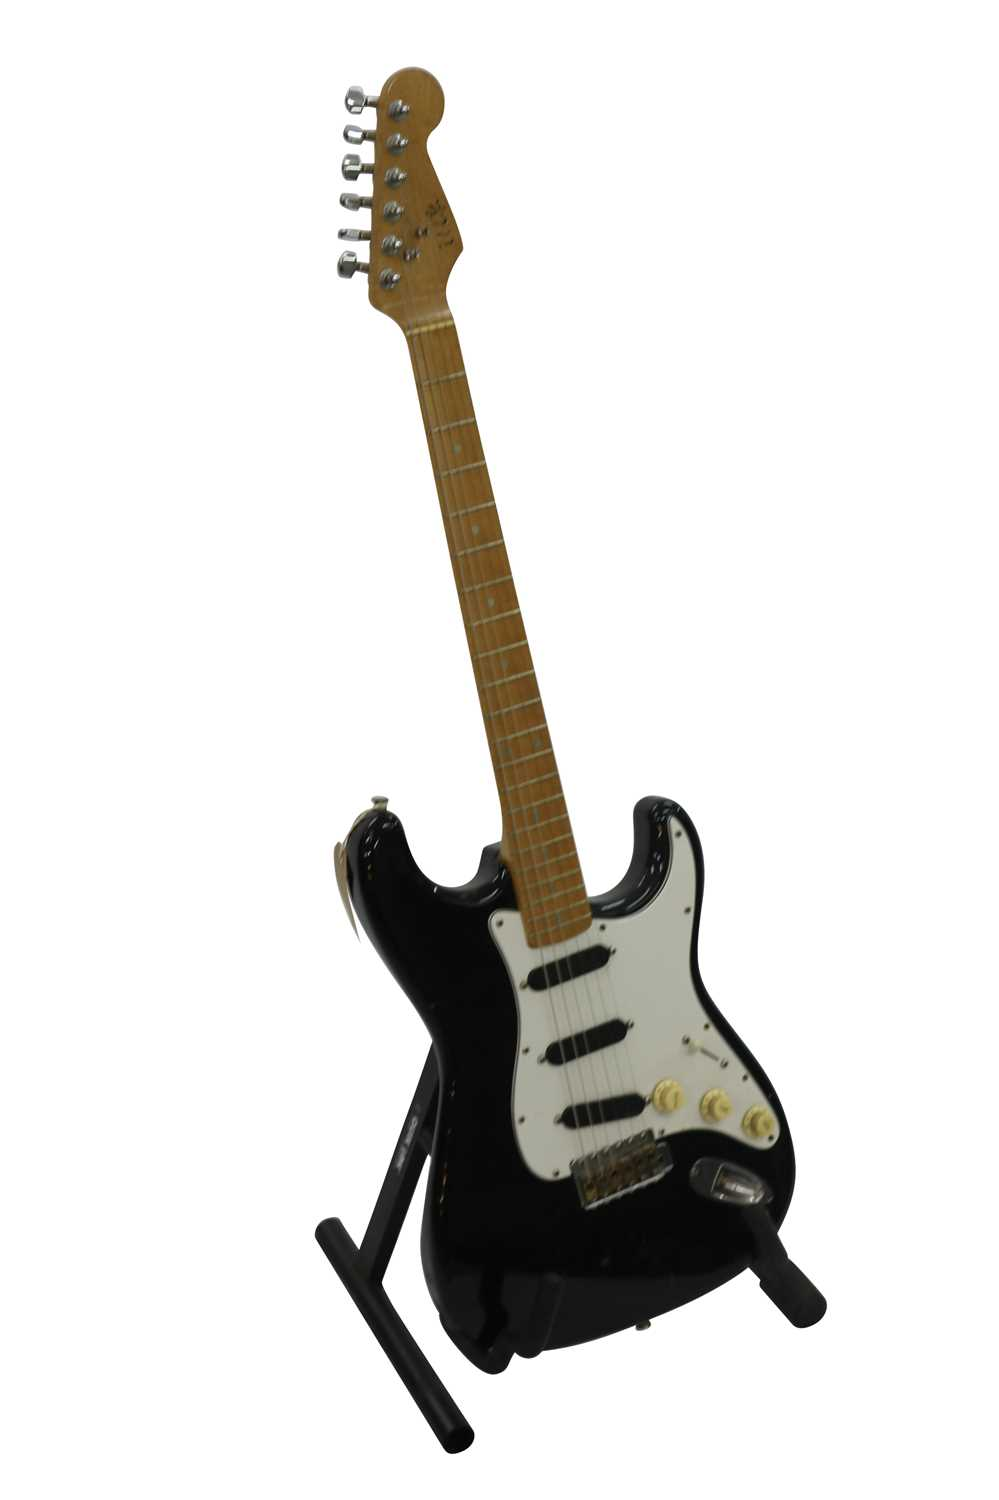 R.C.GIFFIN 6 STRING ELECTRIC GUITAR - Image 8 of 9